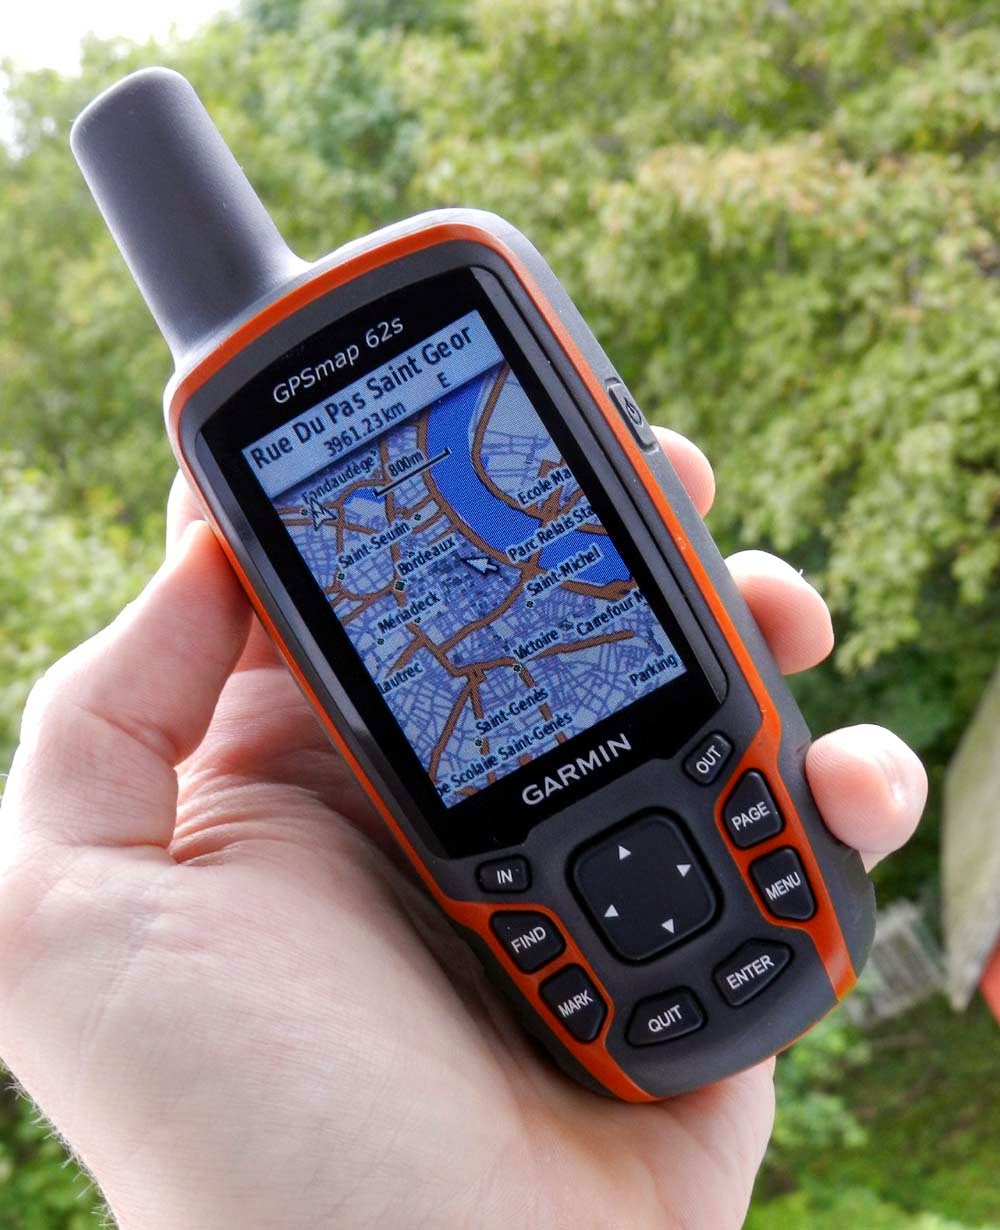 Garmin GPSMAP 62s: Maximum number of gpx files exceeded - On my